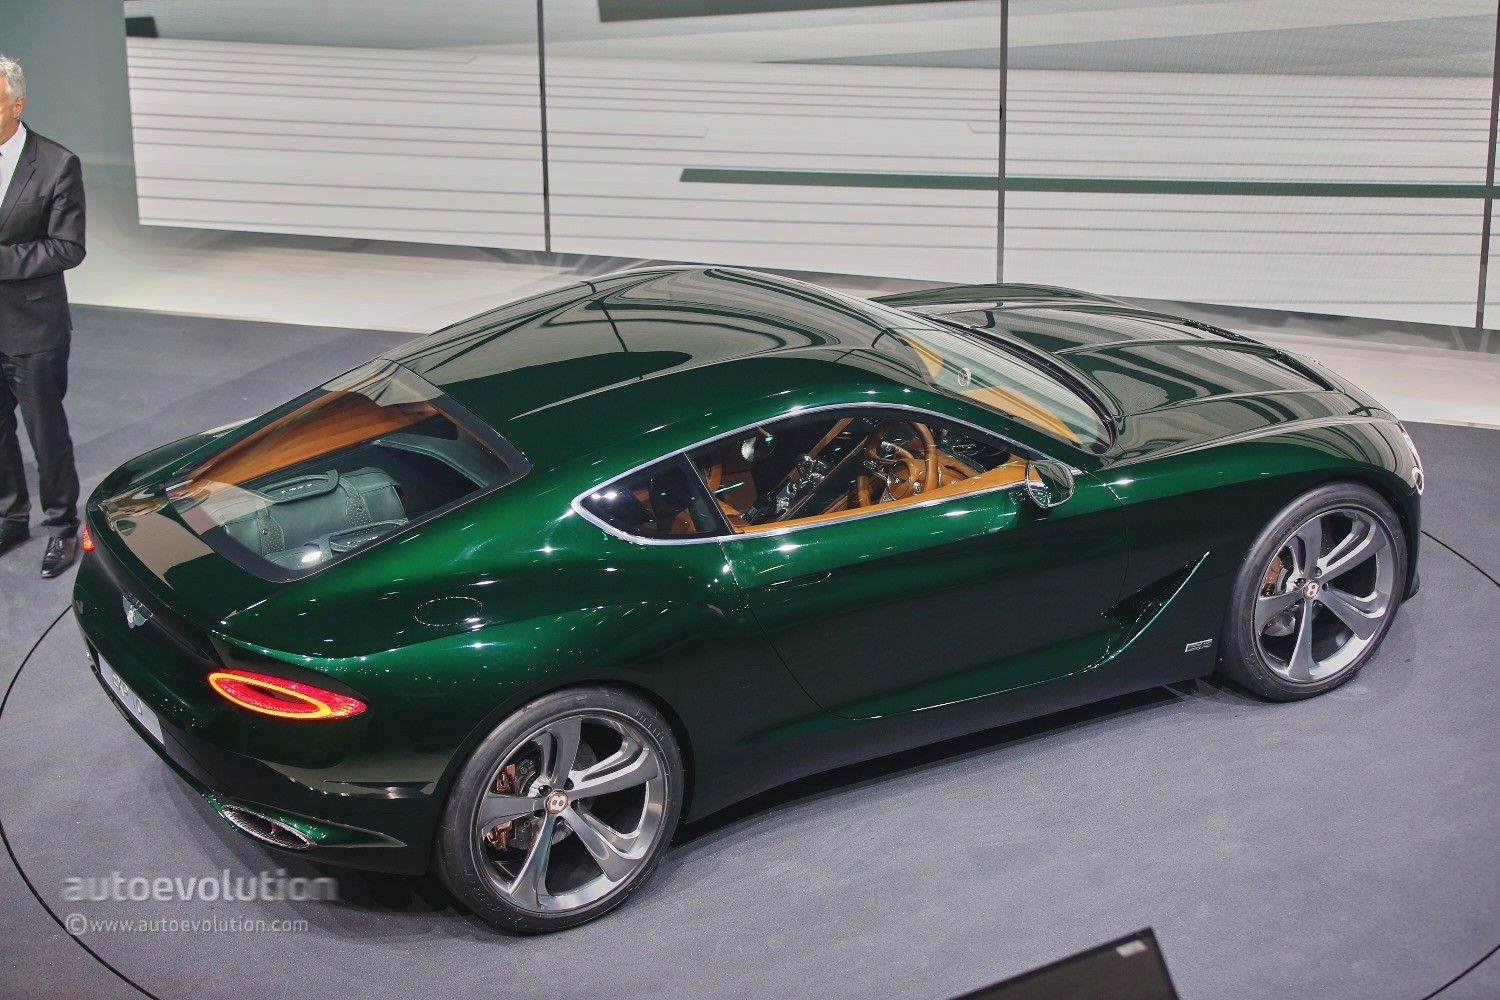 Confirmed Bentley Sports Car Coming In 2019 With Electric